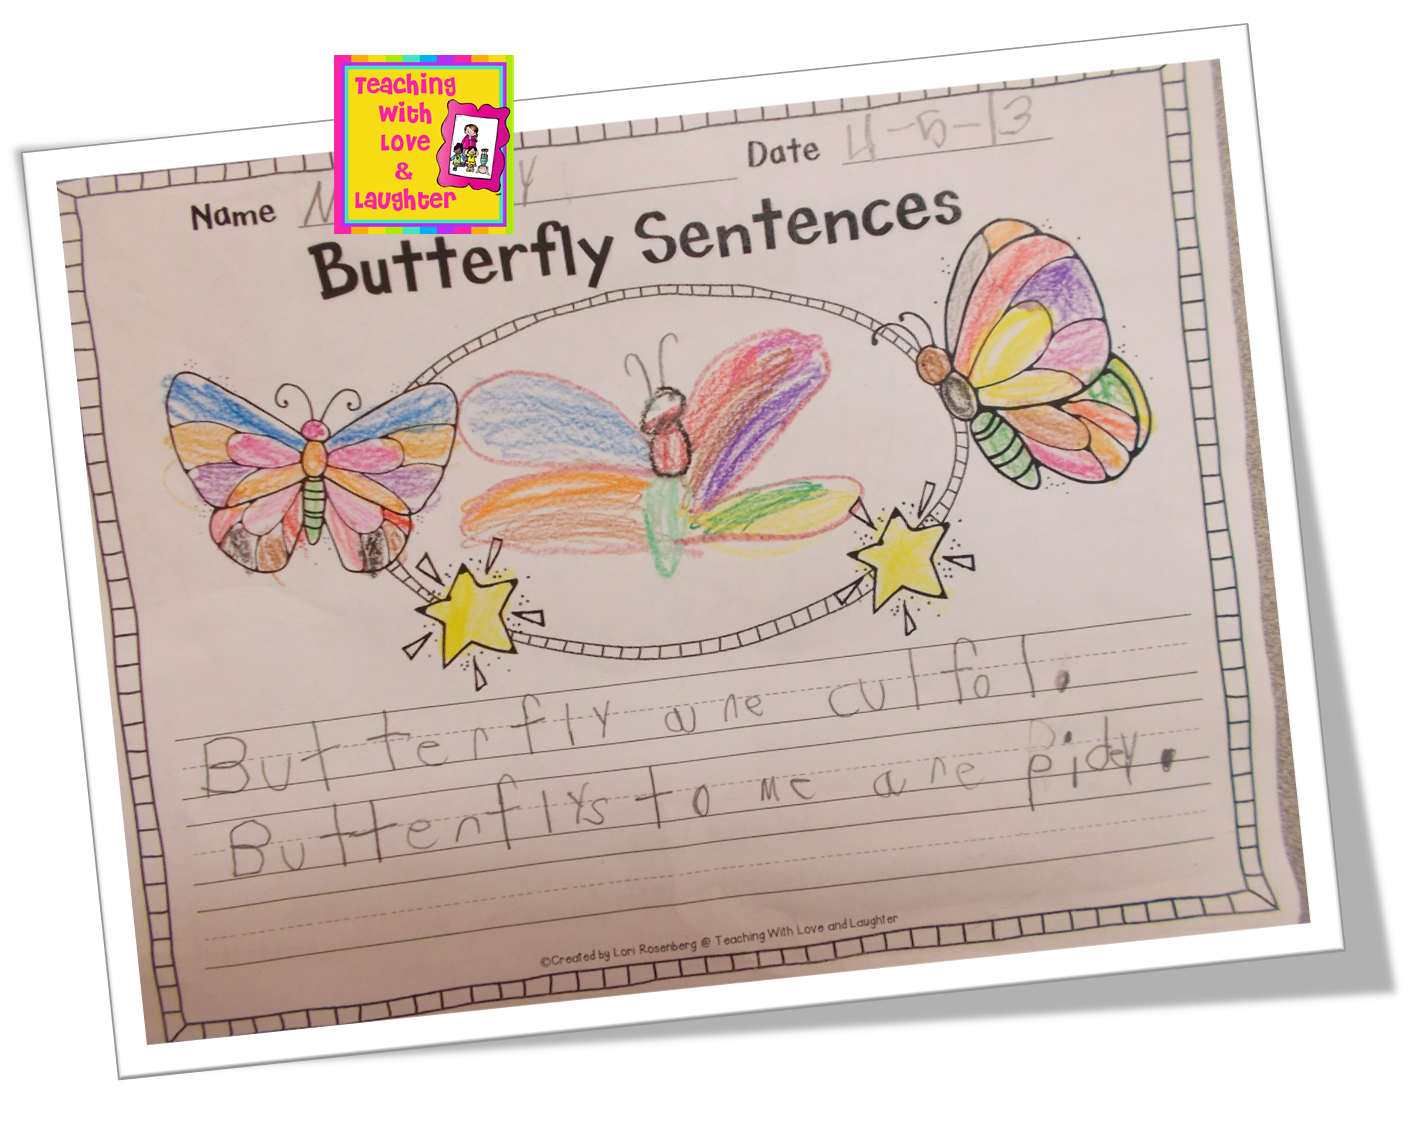 essay on butterfly insects The butterfly will first pump body fluids through its flat wings, making them expand then it will replace the fluid with air and lets its wings dry after that, the butterfly is ready to fly off.